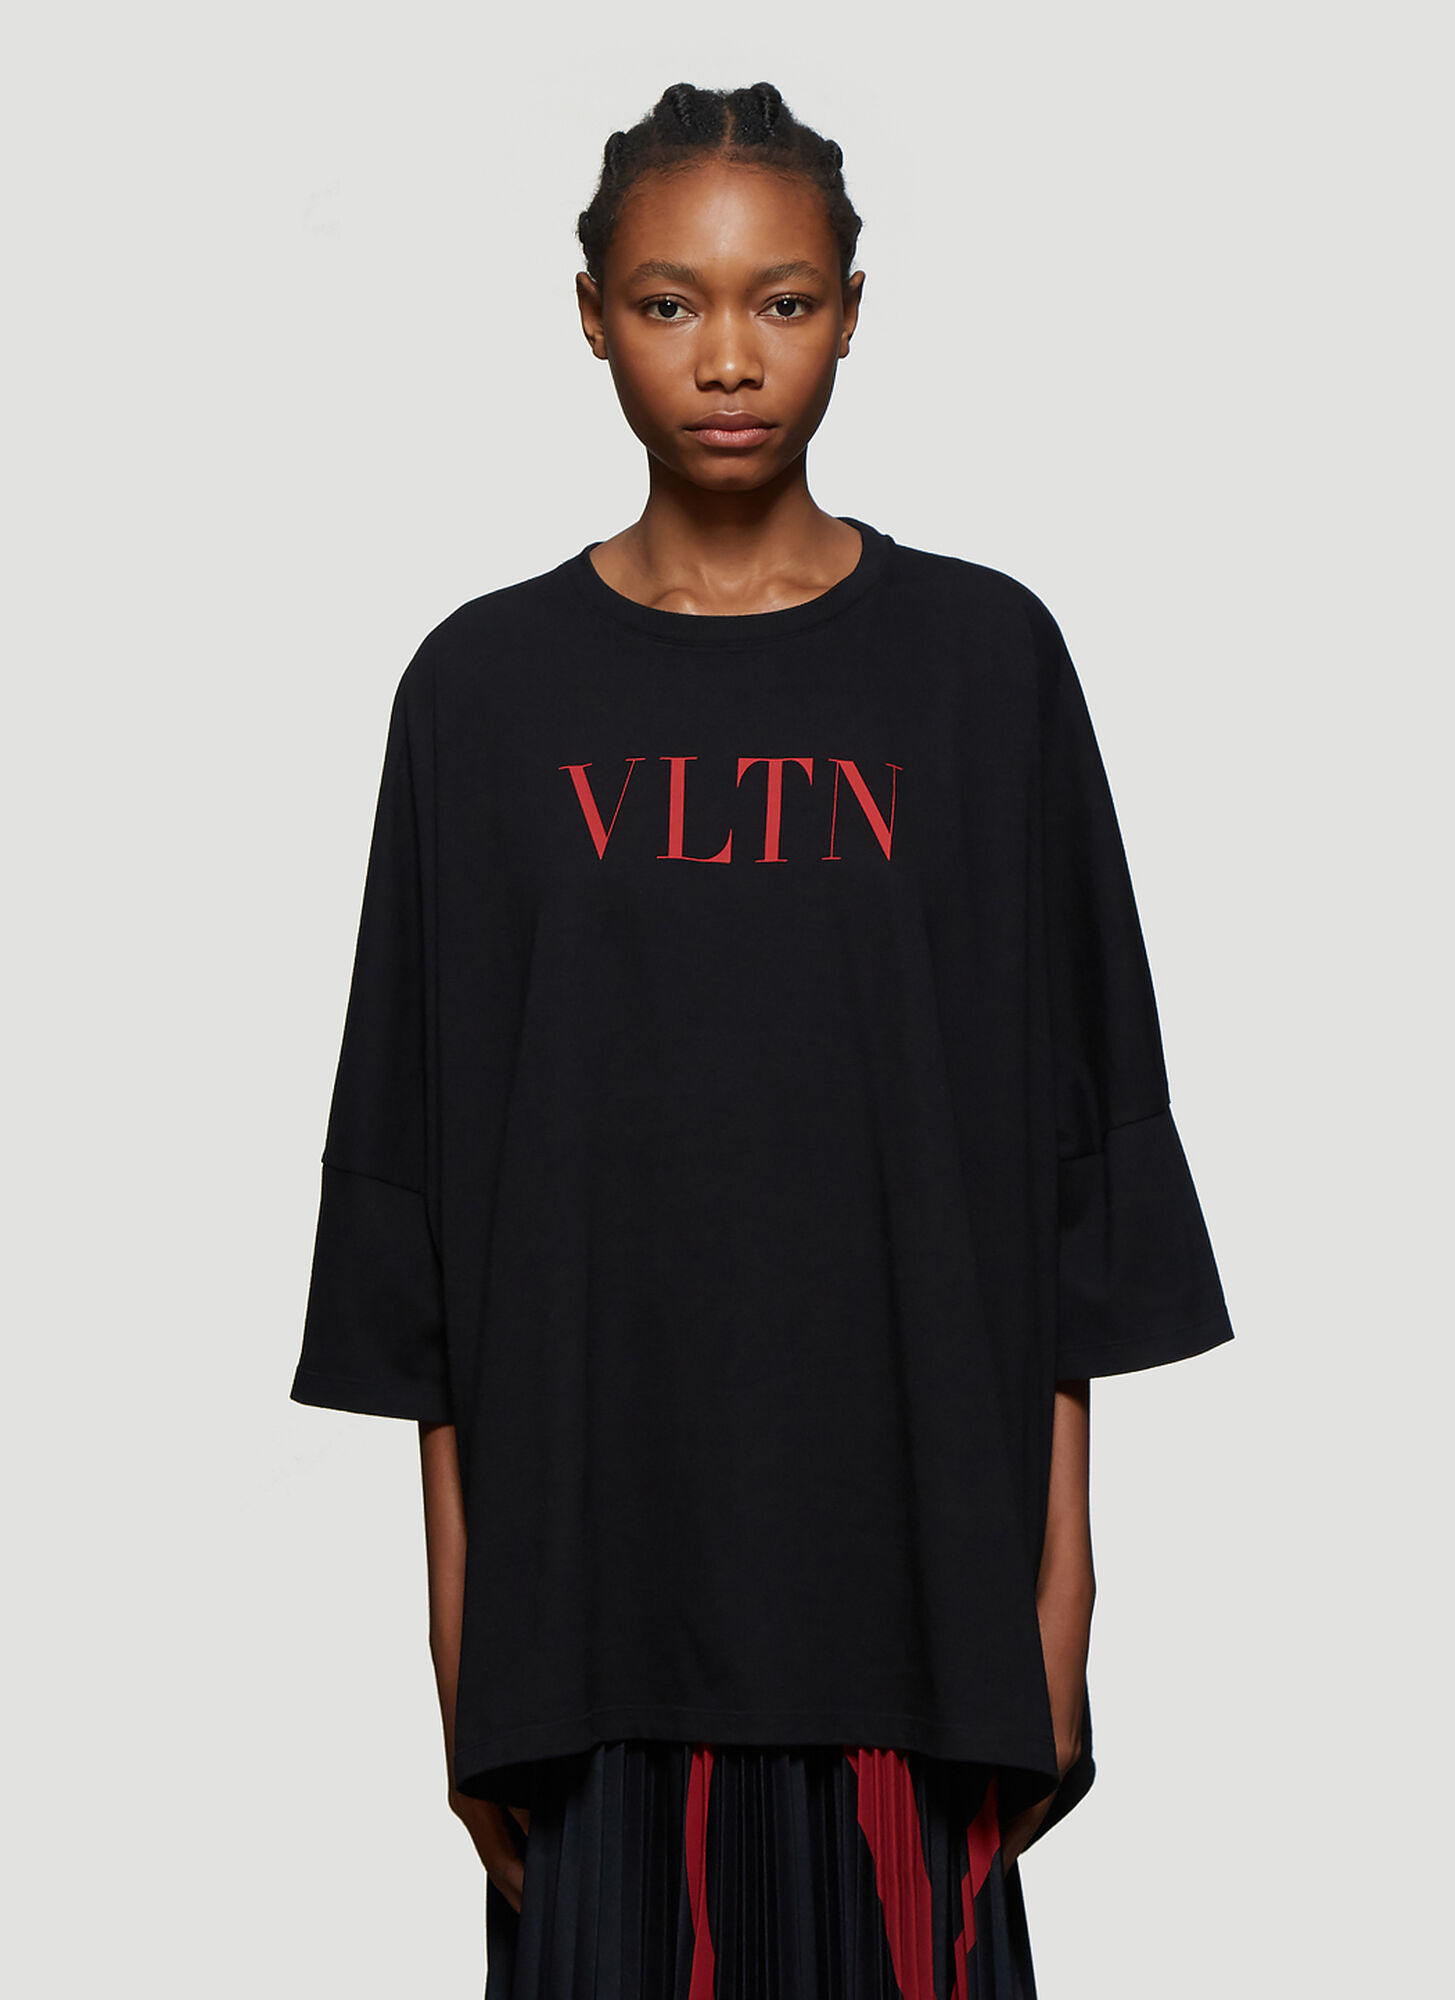 Valentino VLTN Oversized T-Shirt in Black